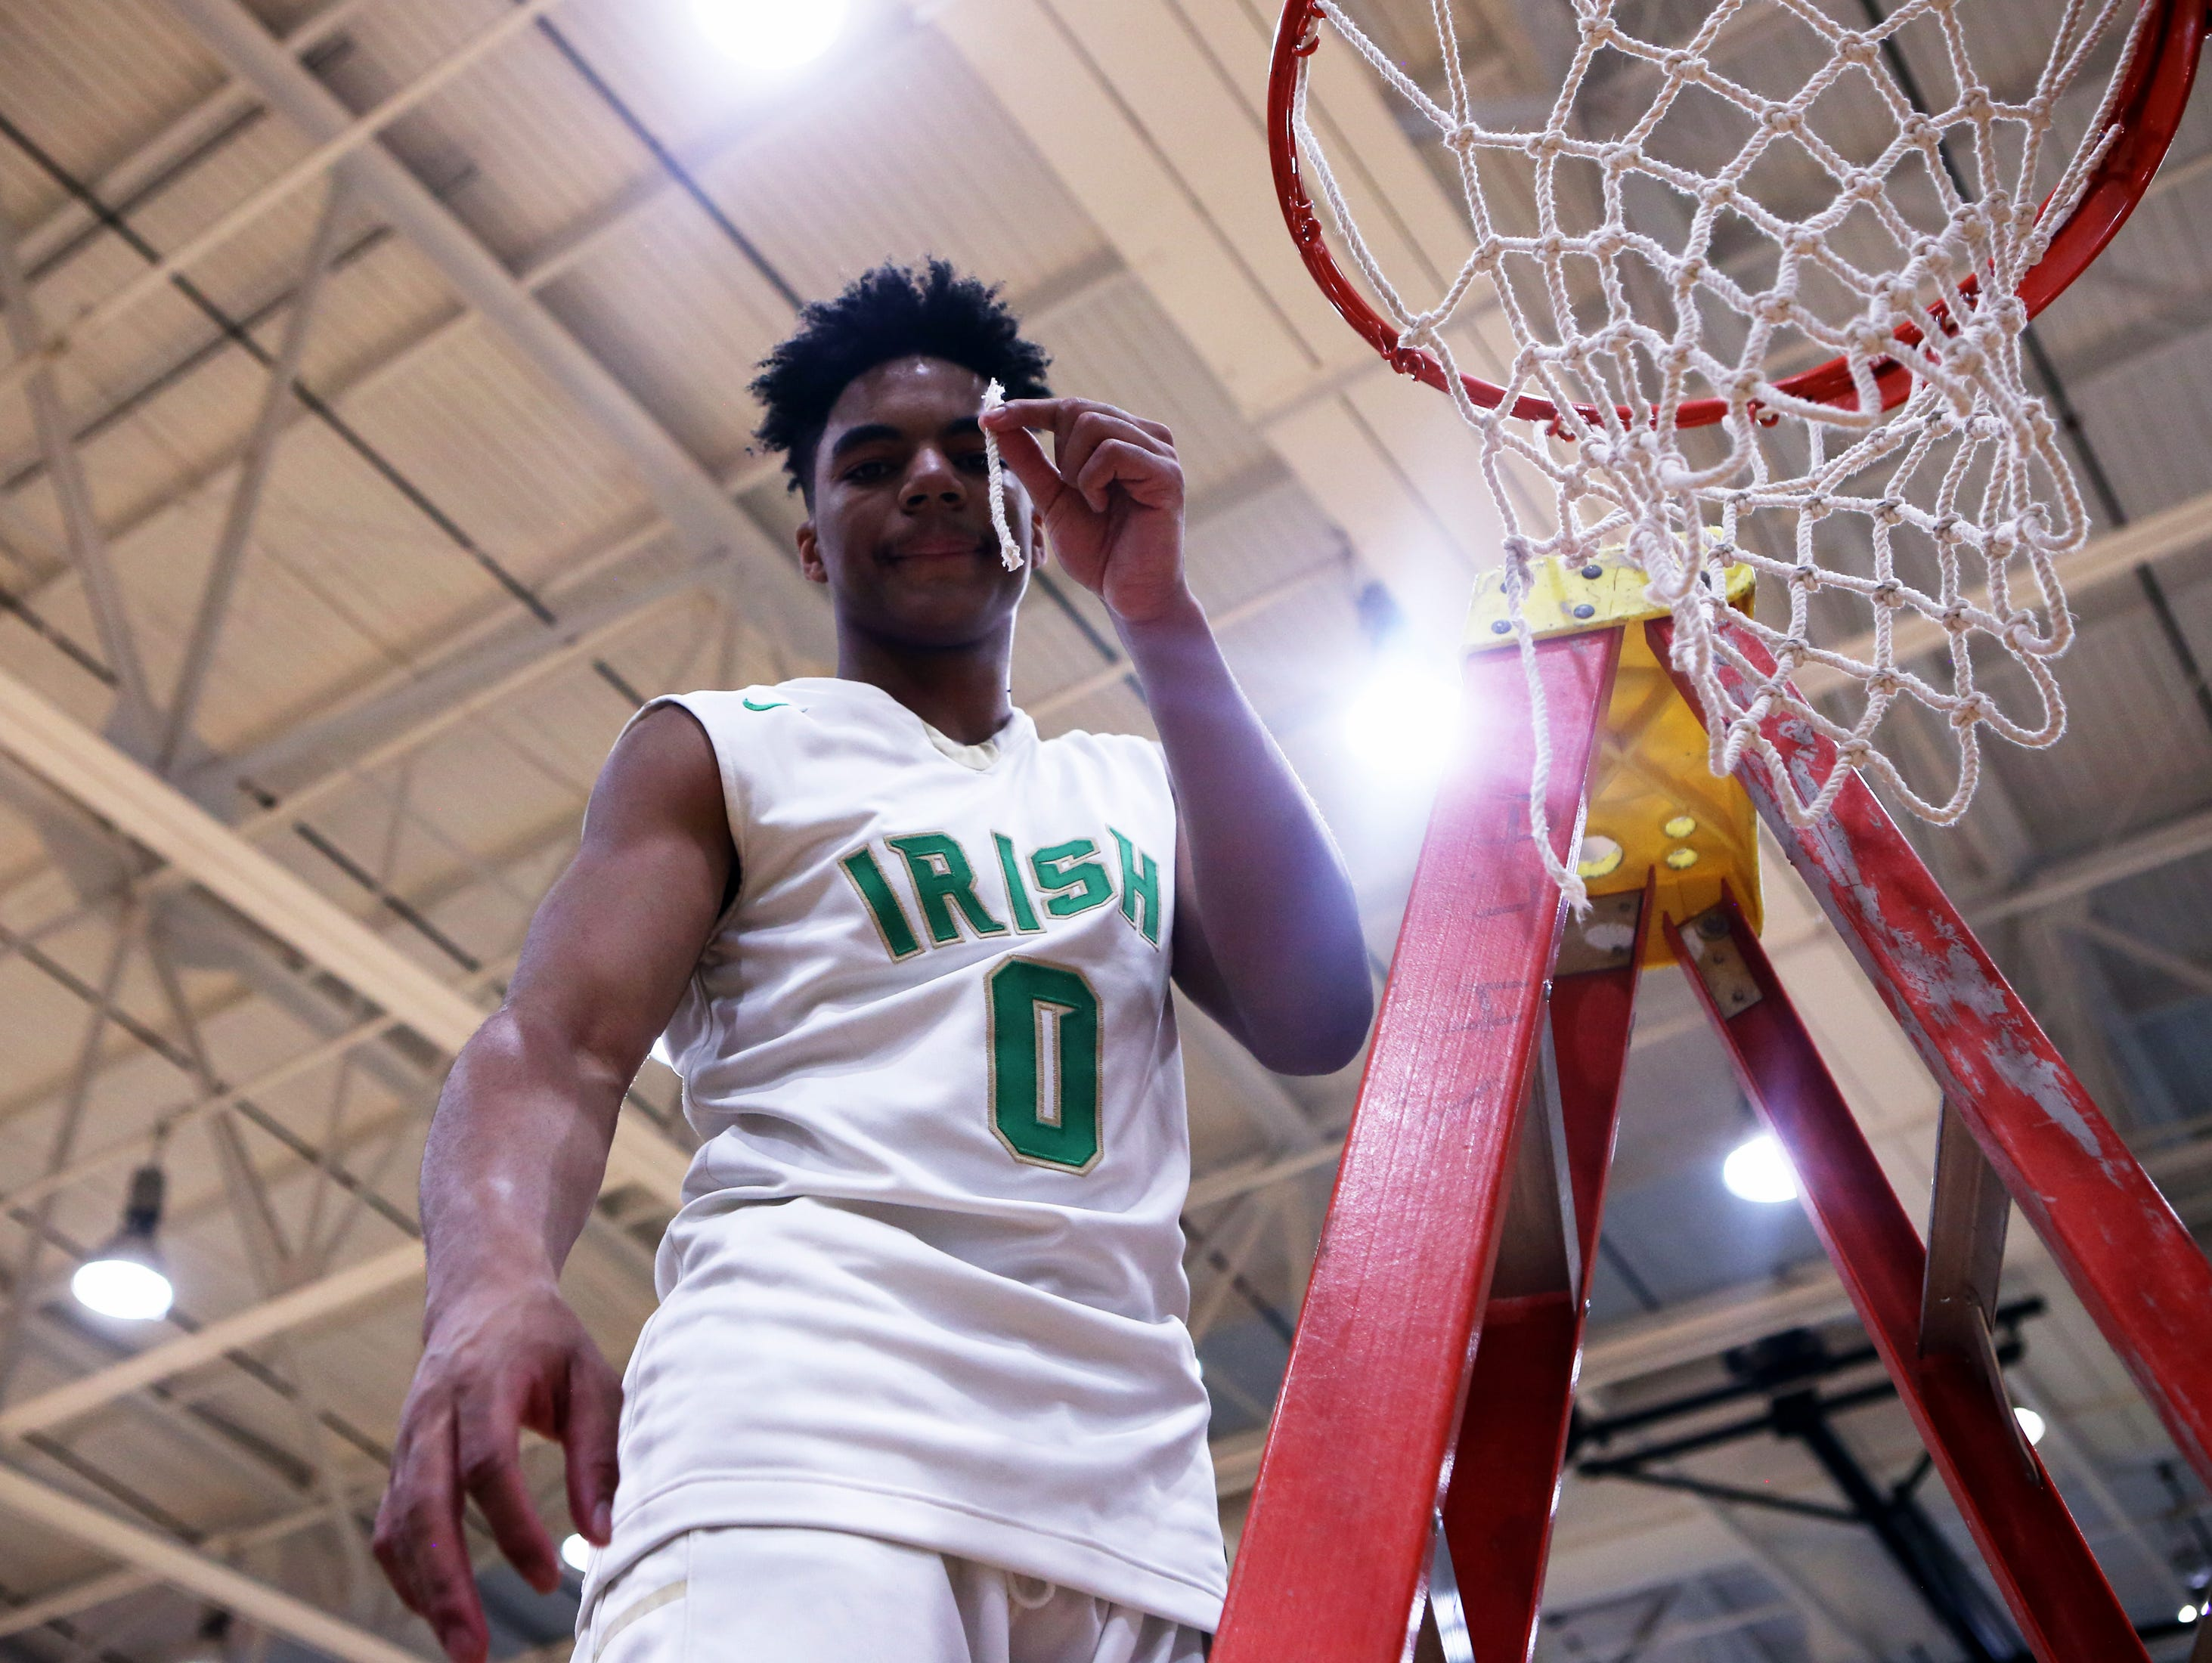 Cathedral's James Franklin cuts a piece of net following the Irish's City tournament win.